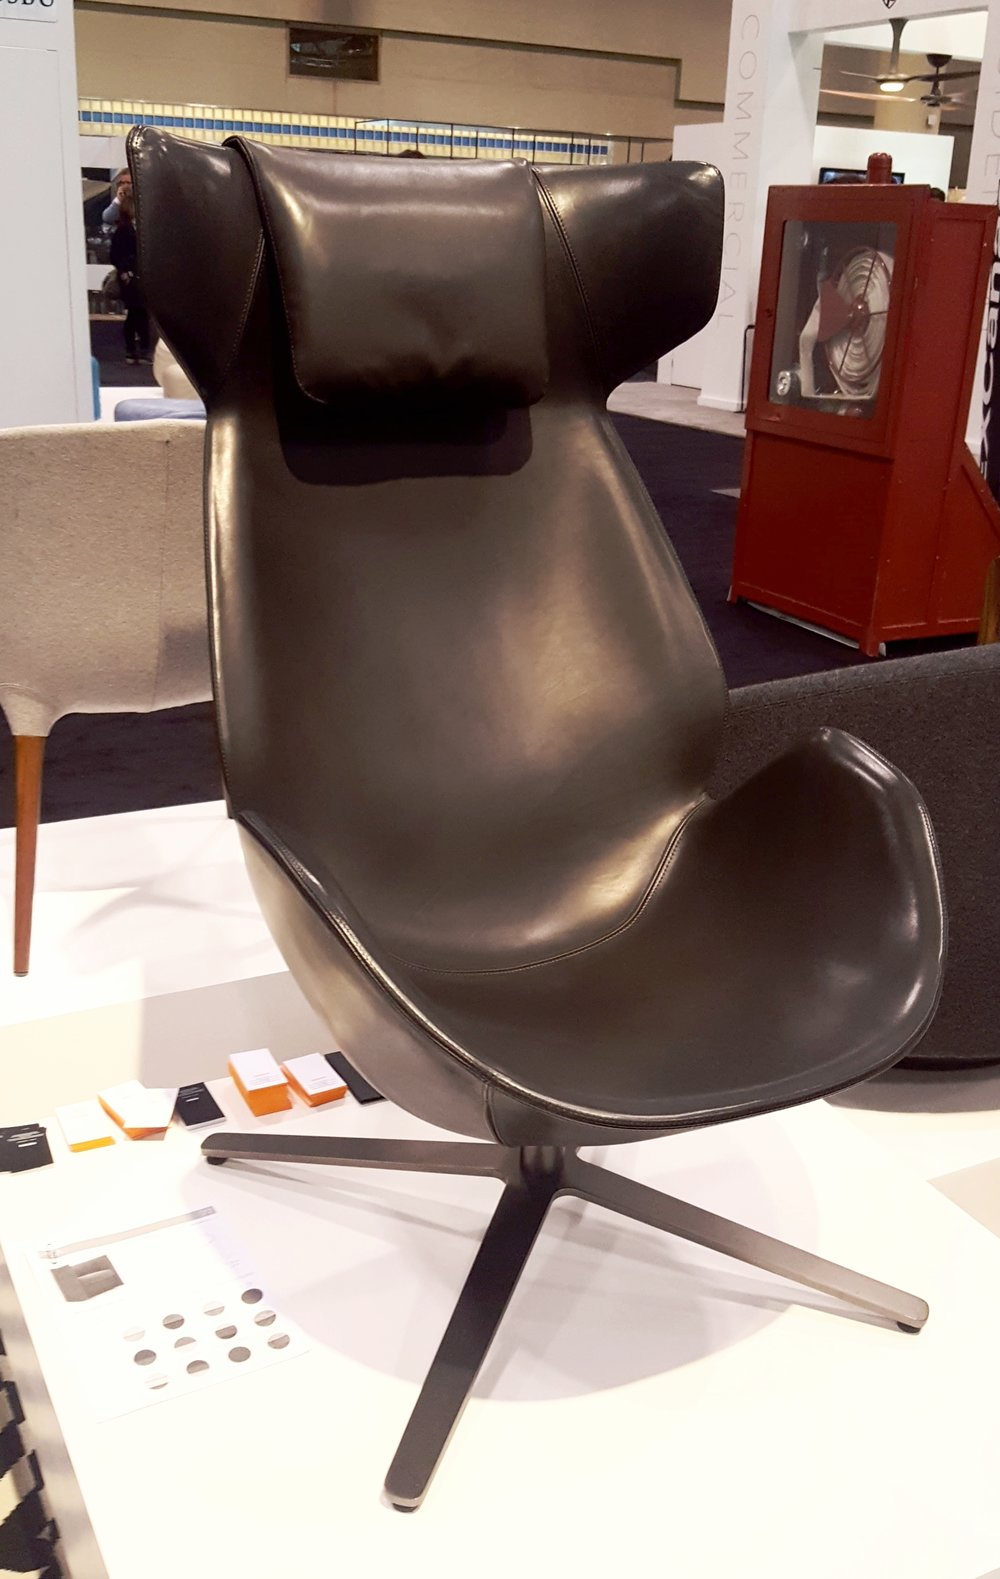 Another take on the Egg chair. Quite comfy! From Suite 22 Interiors